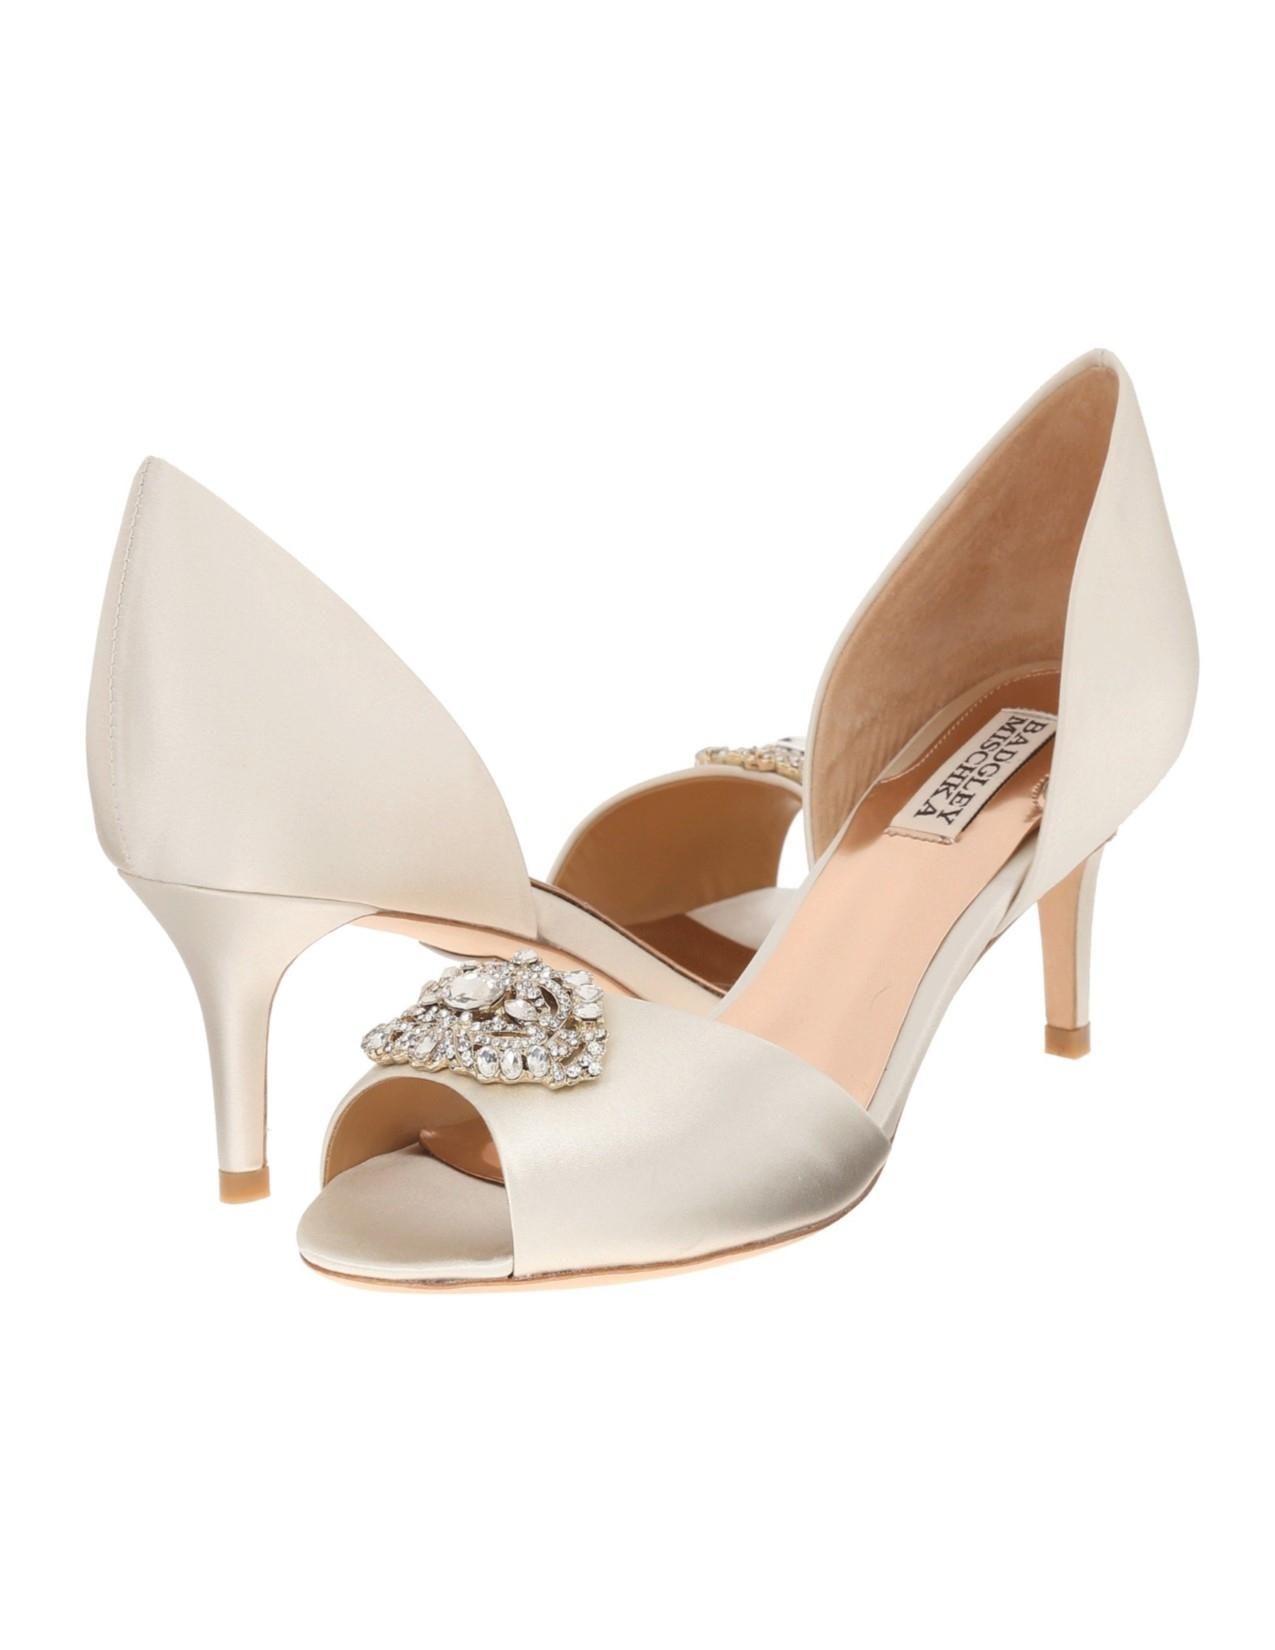 Badgley Mischka Ivory Petrina Peep Toe D'orsay Pump Formal Size US 11  Regular (